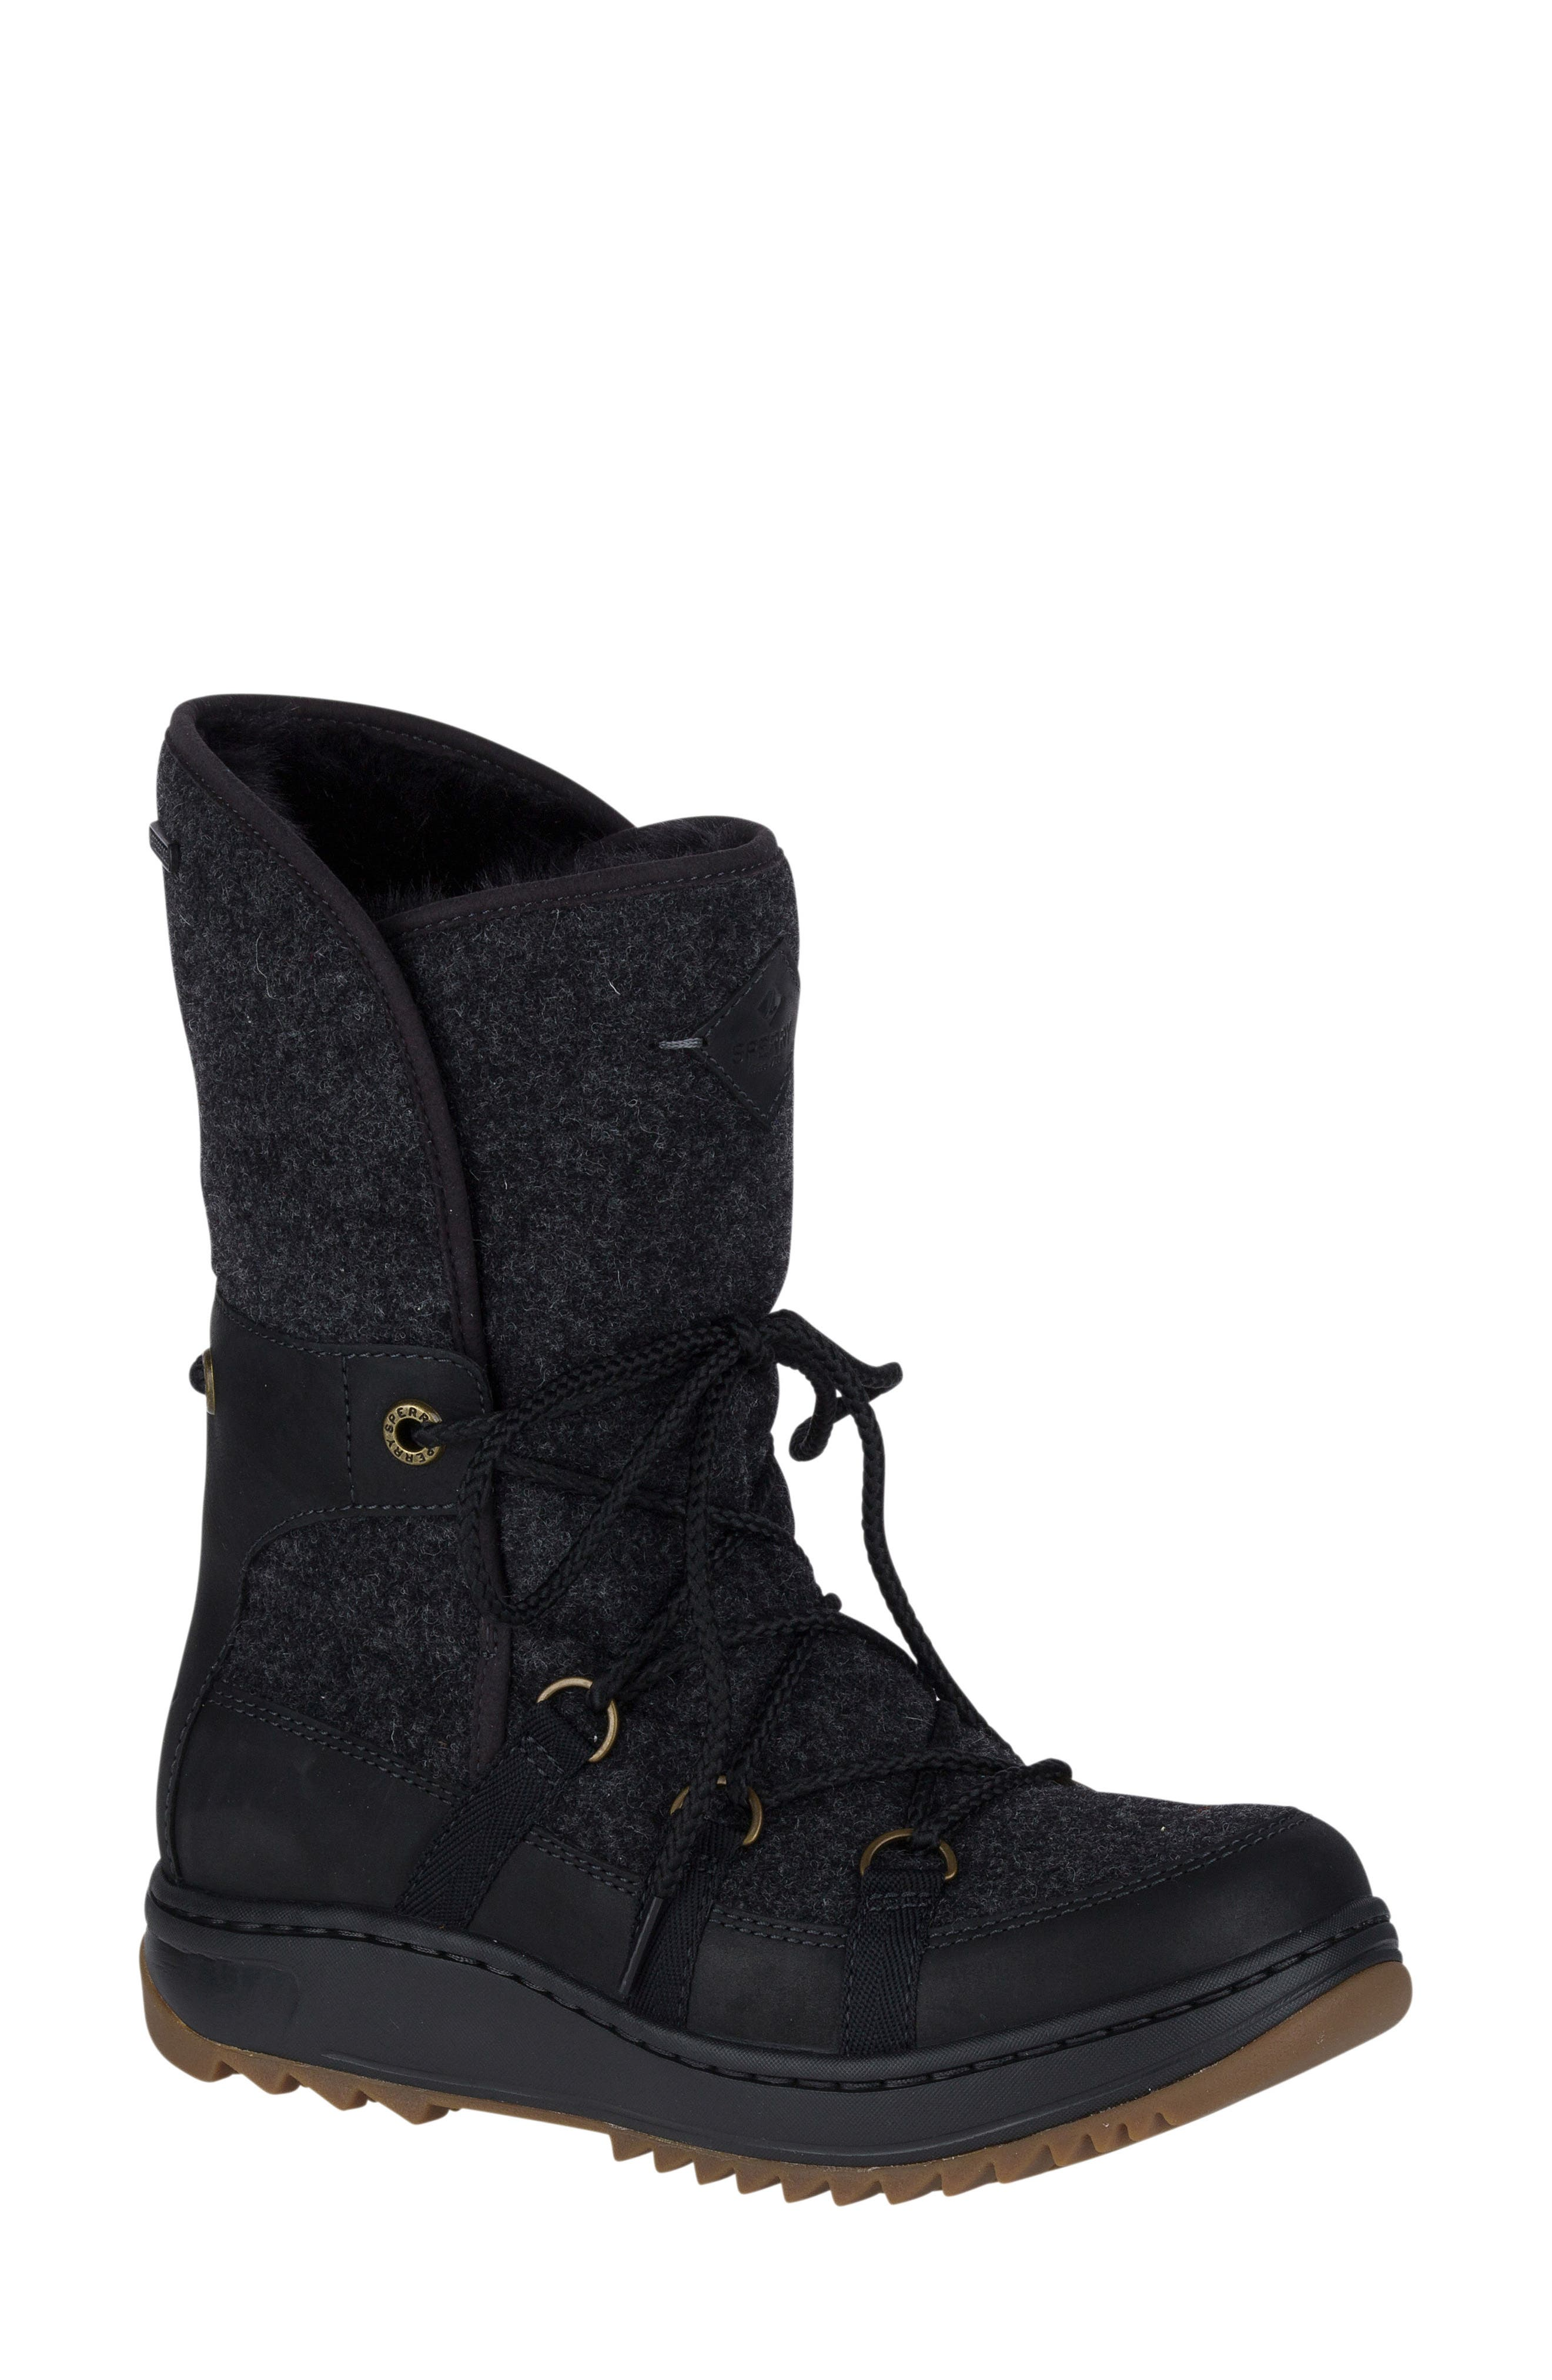 Sperry Powder Ice Cap Thinsulate Insulated Water Resistant Boot (Women)